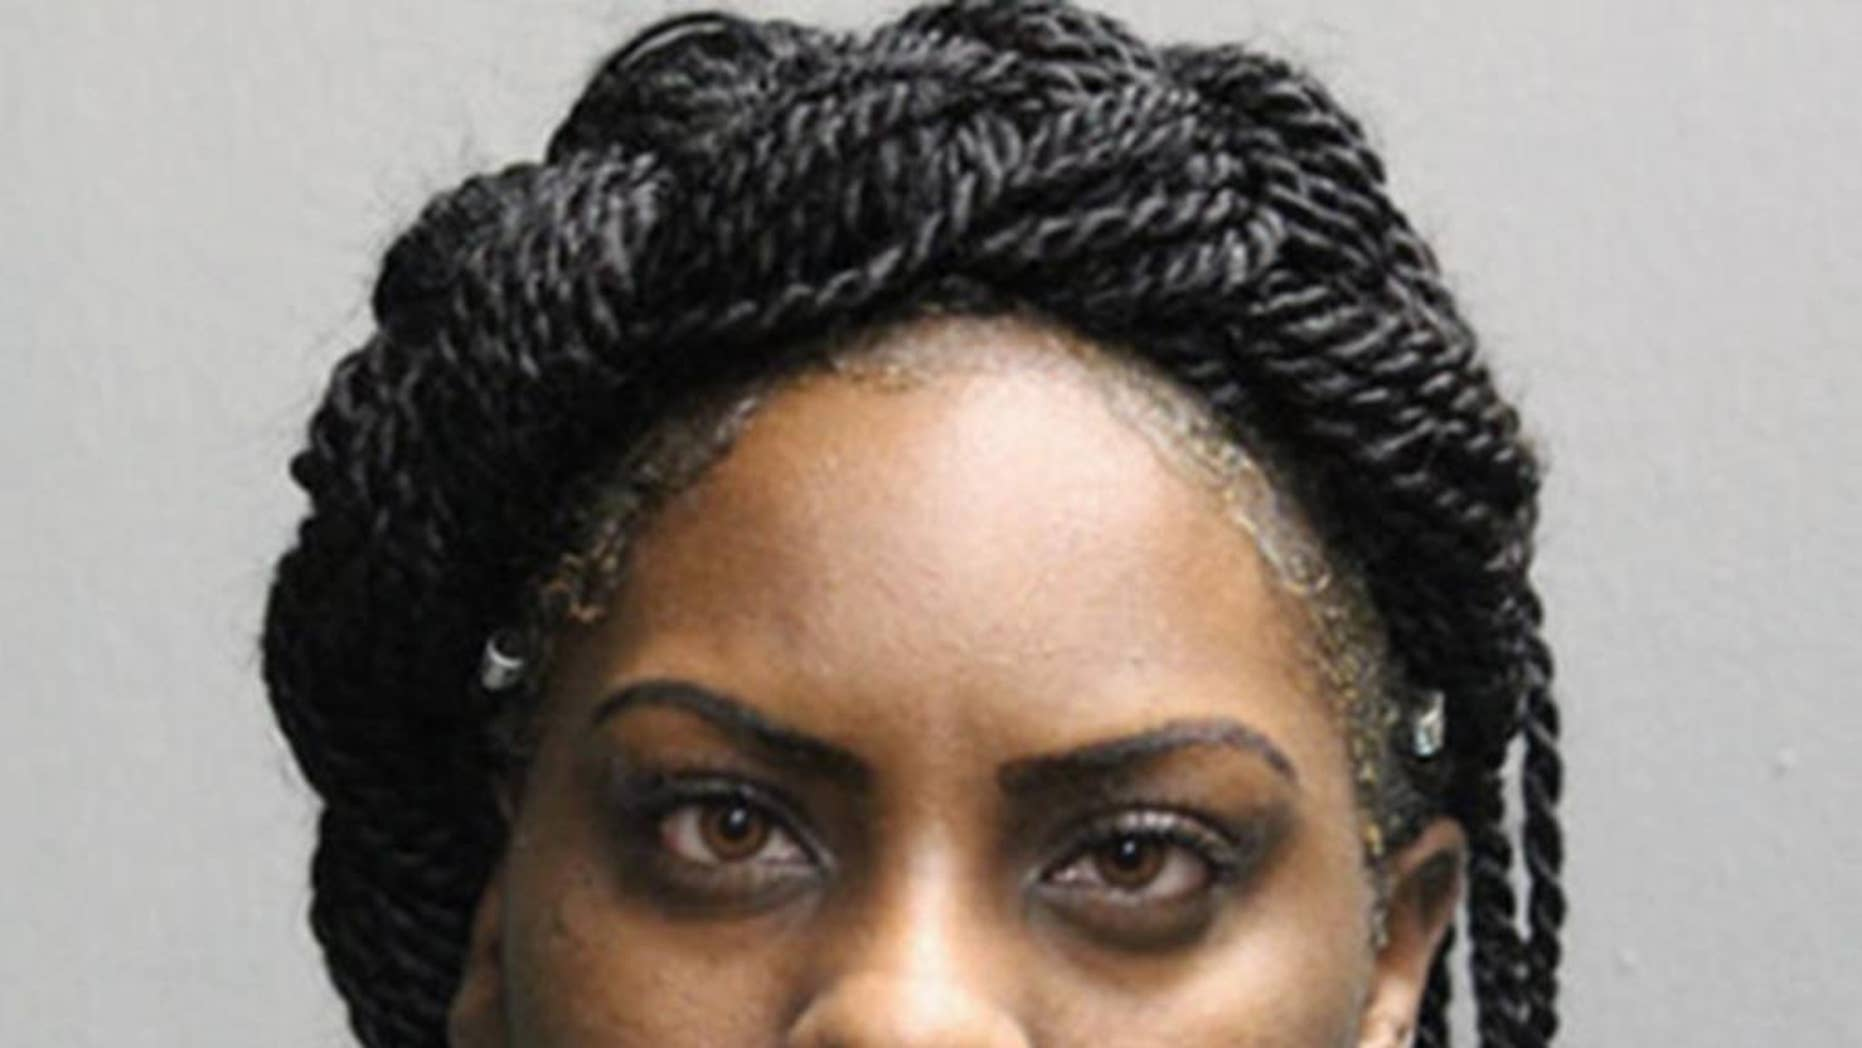 This booking photo provided by the Chicago Police Department shows Larrinita Starks, who has been charged with child endangerment after her 5-year-old daughter accidentally shot and wounded herself in the abdomen with a handgun that she found in her Stark's purse Tuesday night, Jan. 17, 2017. (Chicago Police department via AP)